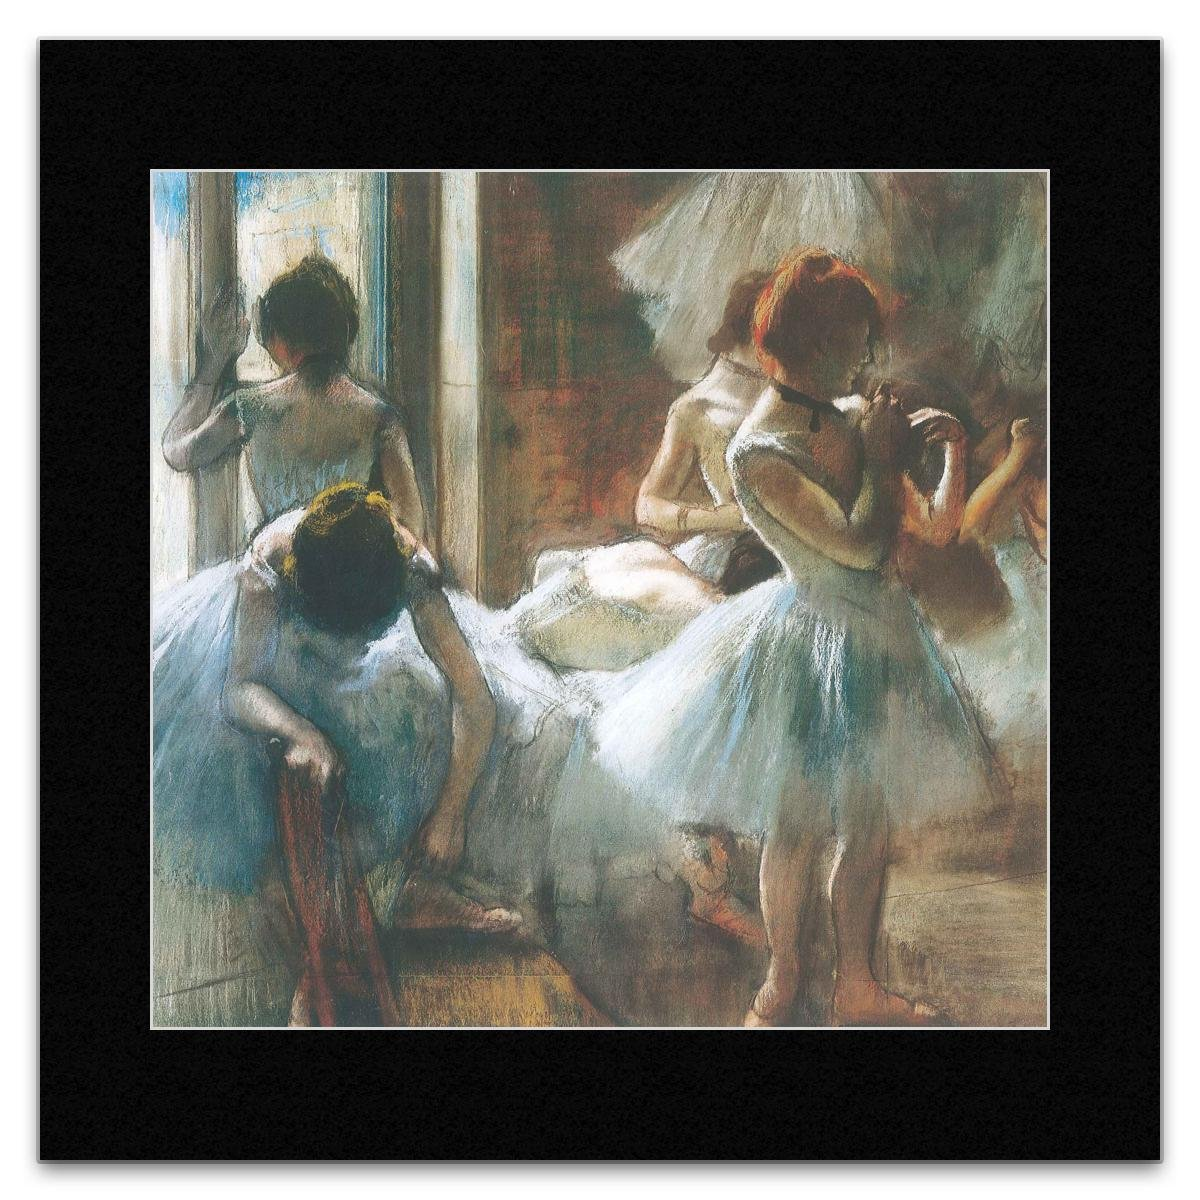 Amazon.com: TUSHITA Edgar Degas - Dancers 1884/1885 Mini Poster - 40x40cm:  Kitchen & Dining